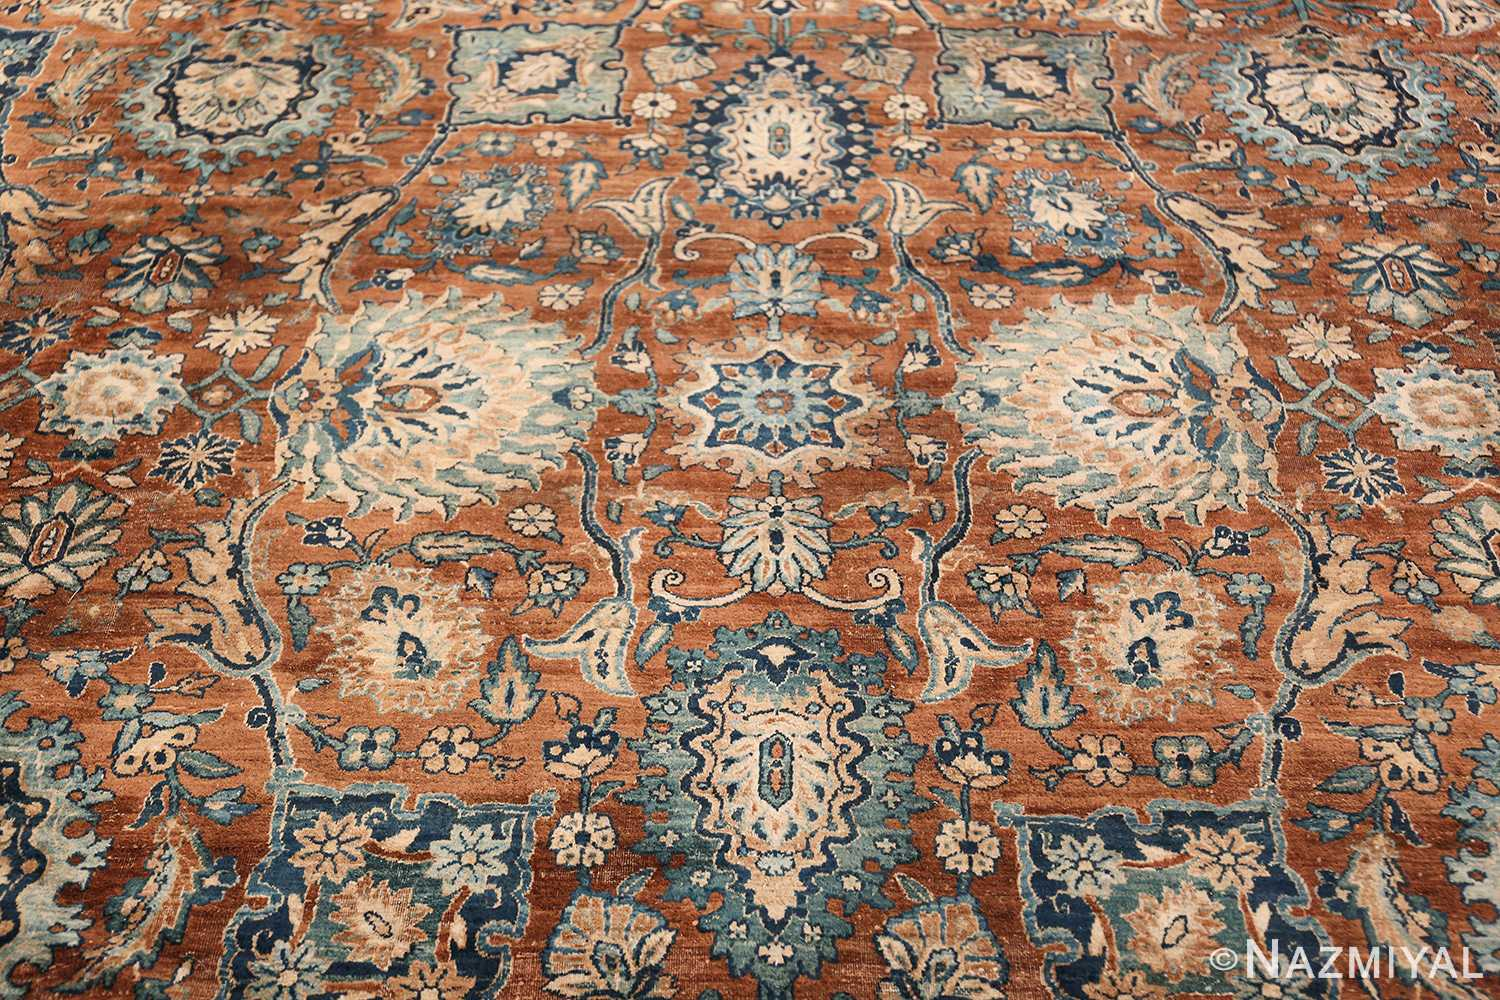 Oversized Antique Persian Kerman Carpet 50192 Blue Central Medallion Nazmiyal